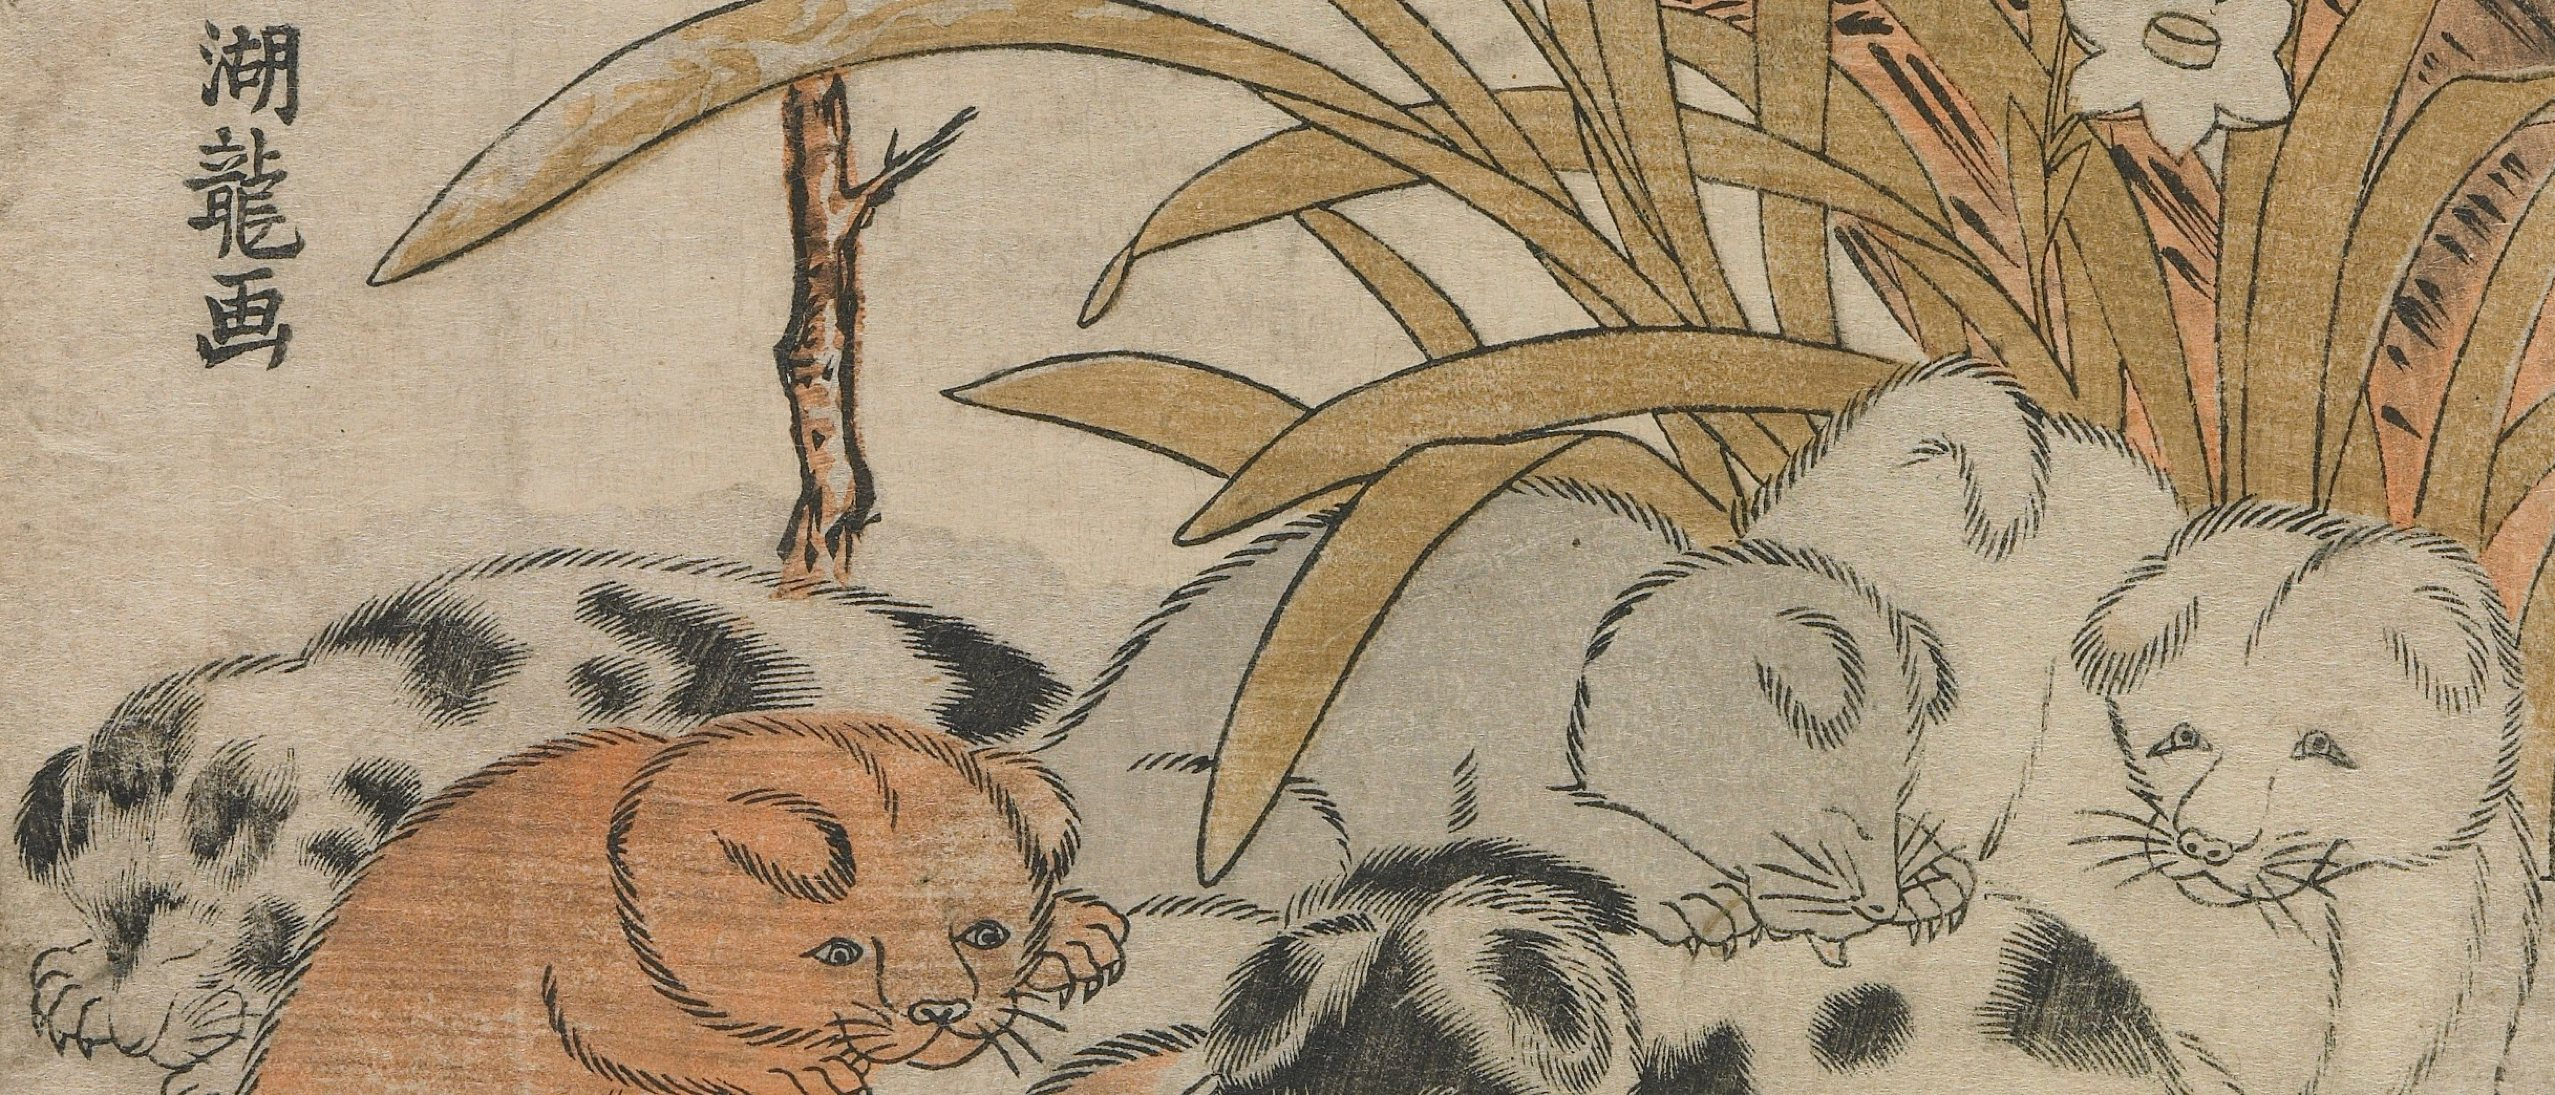 Woodblock print of puppies in the snow